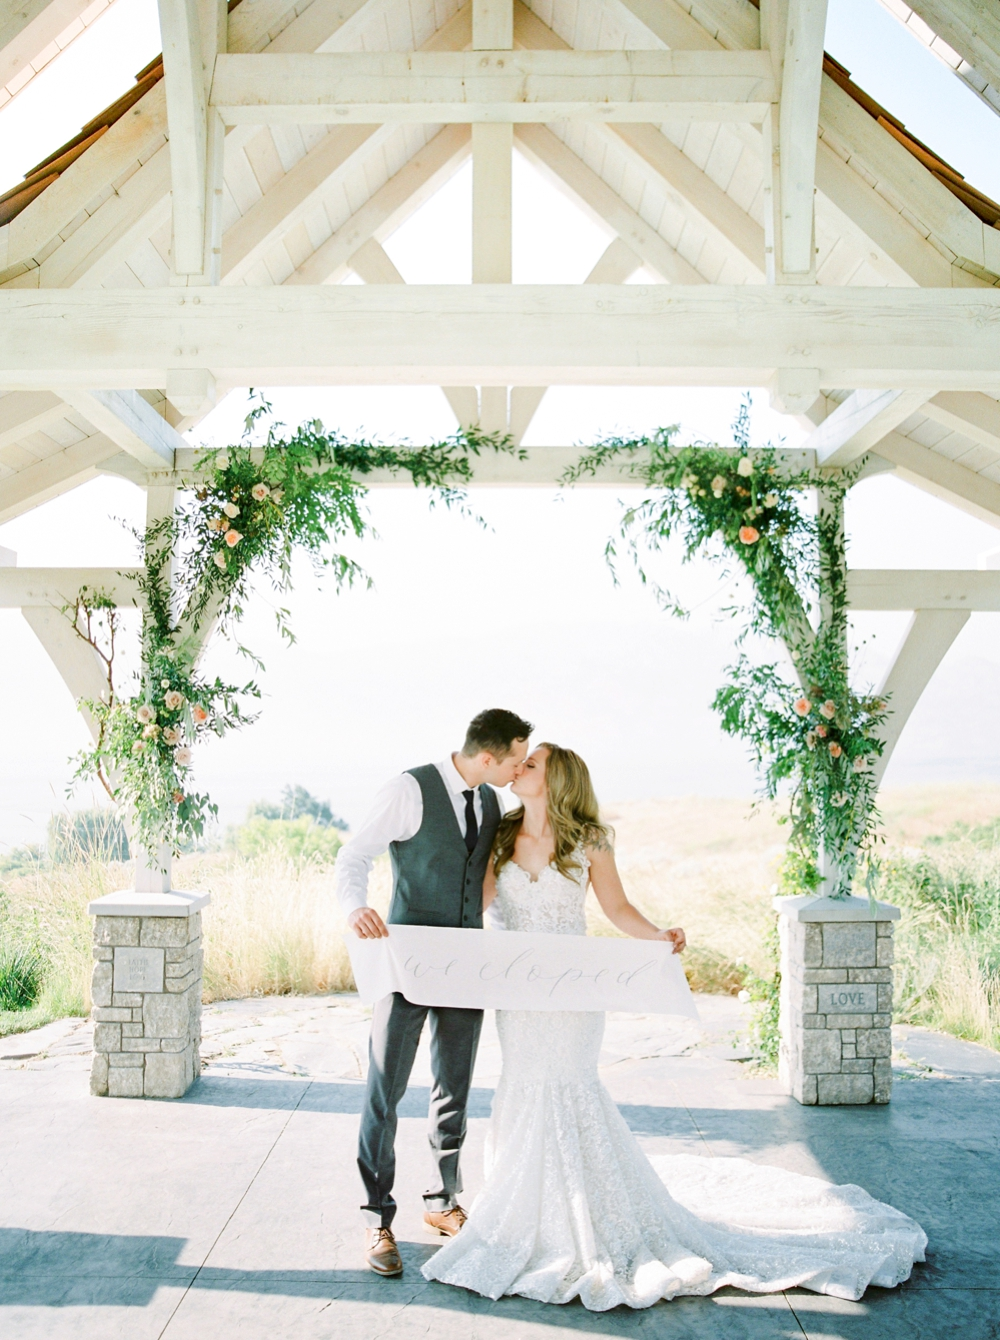 Sanctuary Gardens Kelowna Wedding | Elopement Photography | Calligraphy wedding banner we eloped | bride and groom portraits | Justine Milton Fine Art Film Wedding Photographers